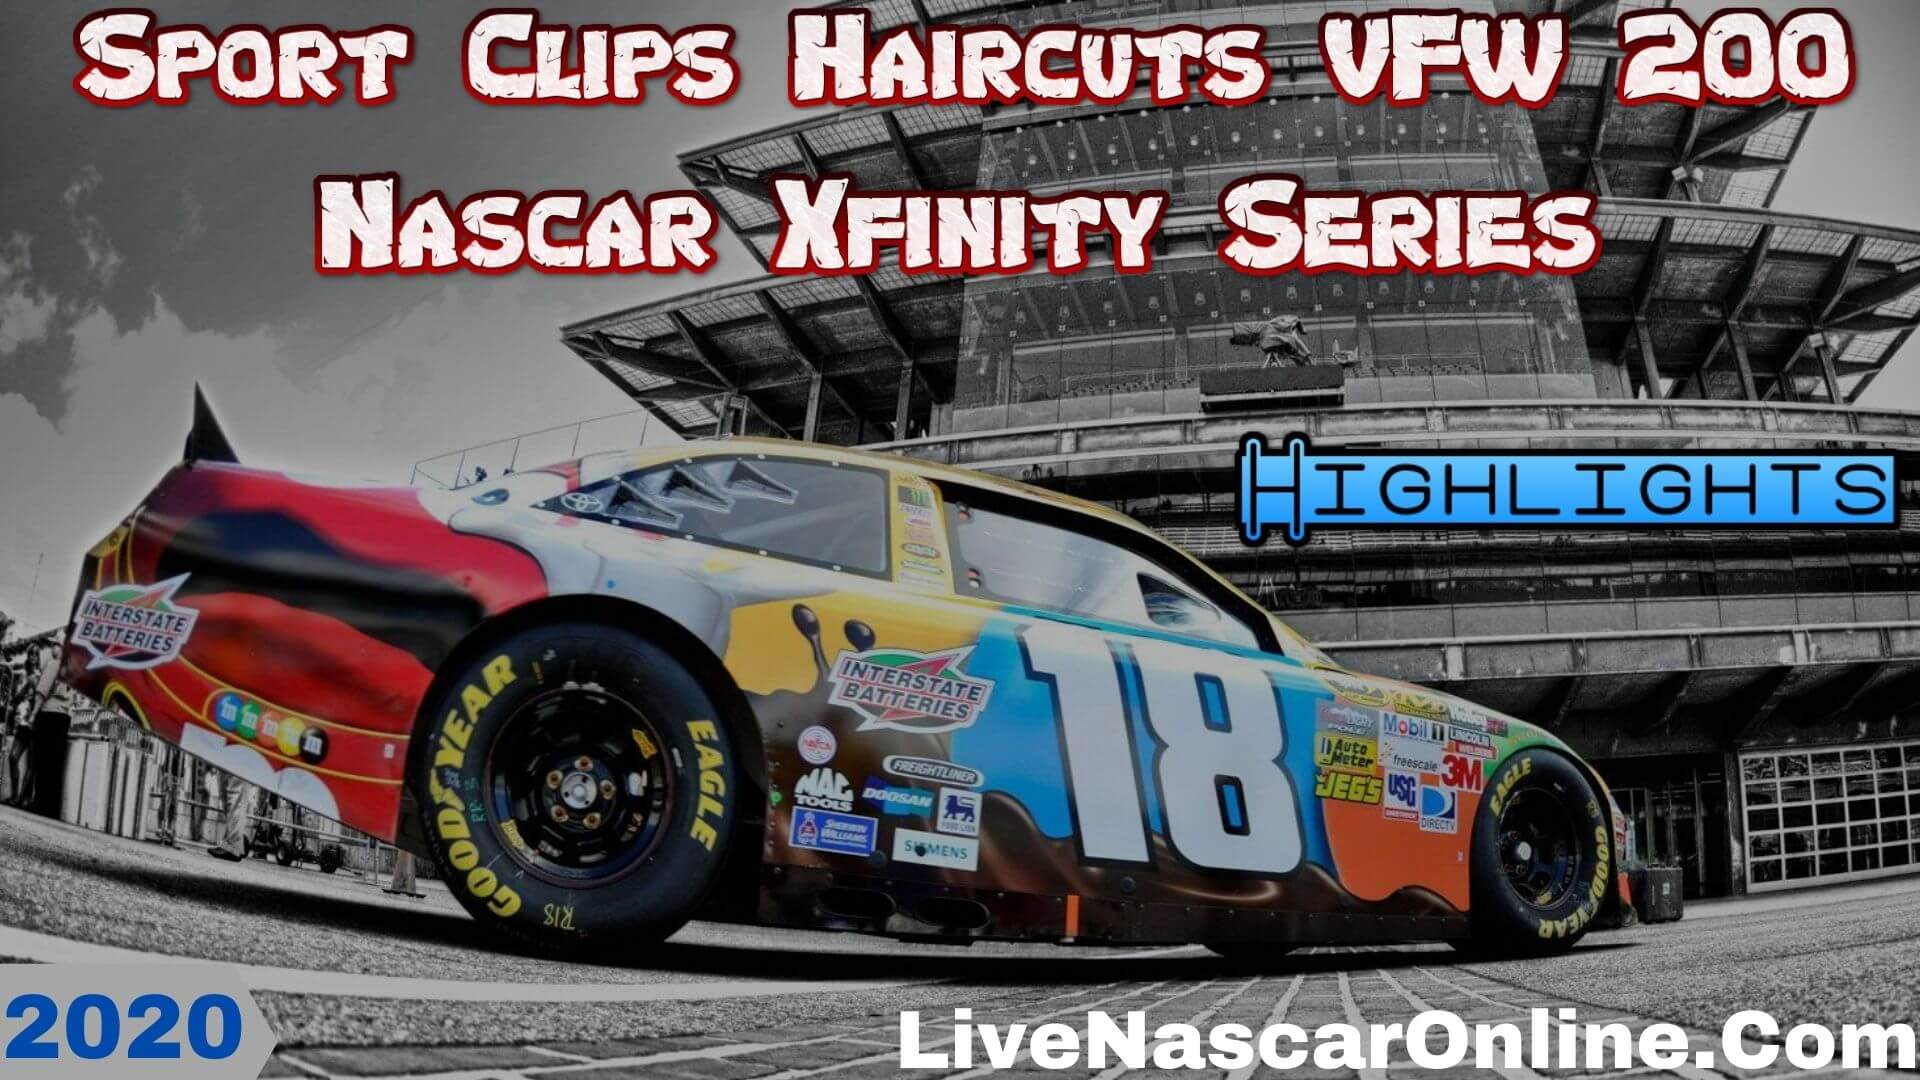 Sport Clips Haircuts VFW 200 Xfinity Series Highlights 2020